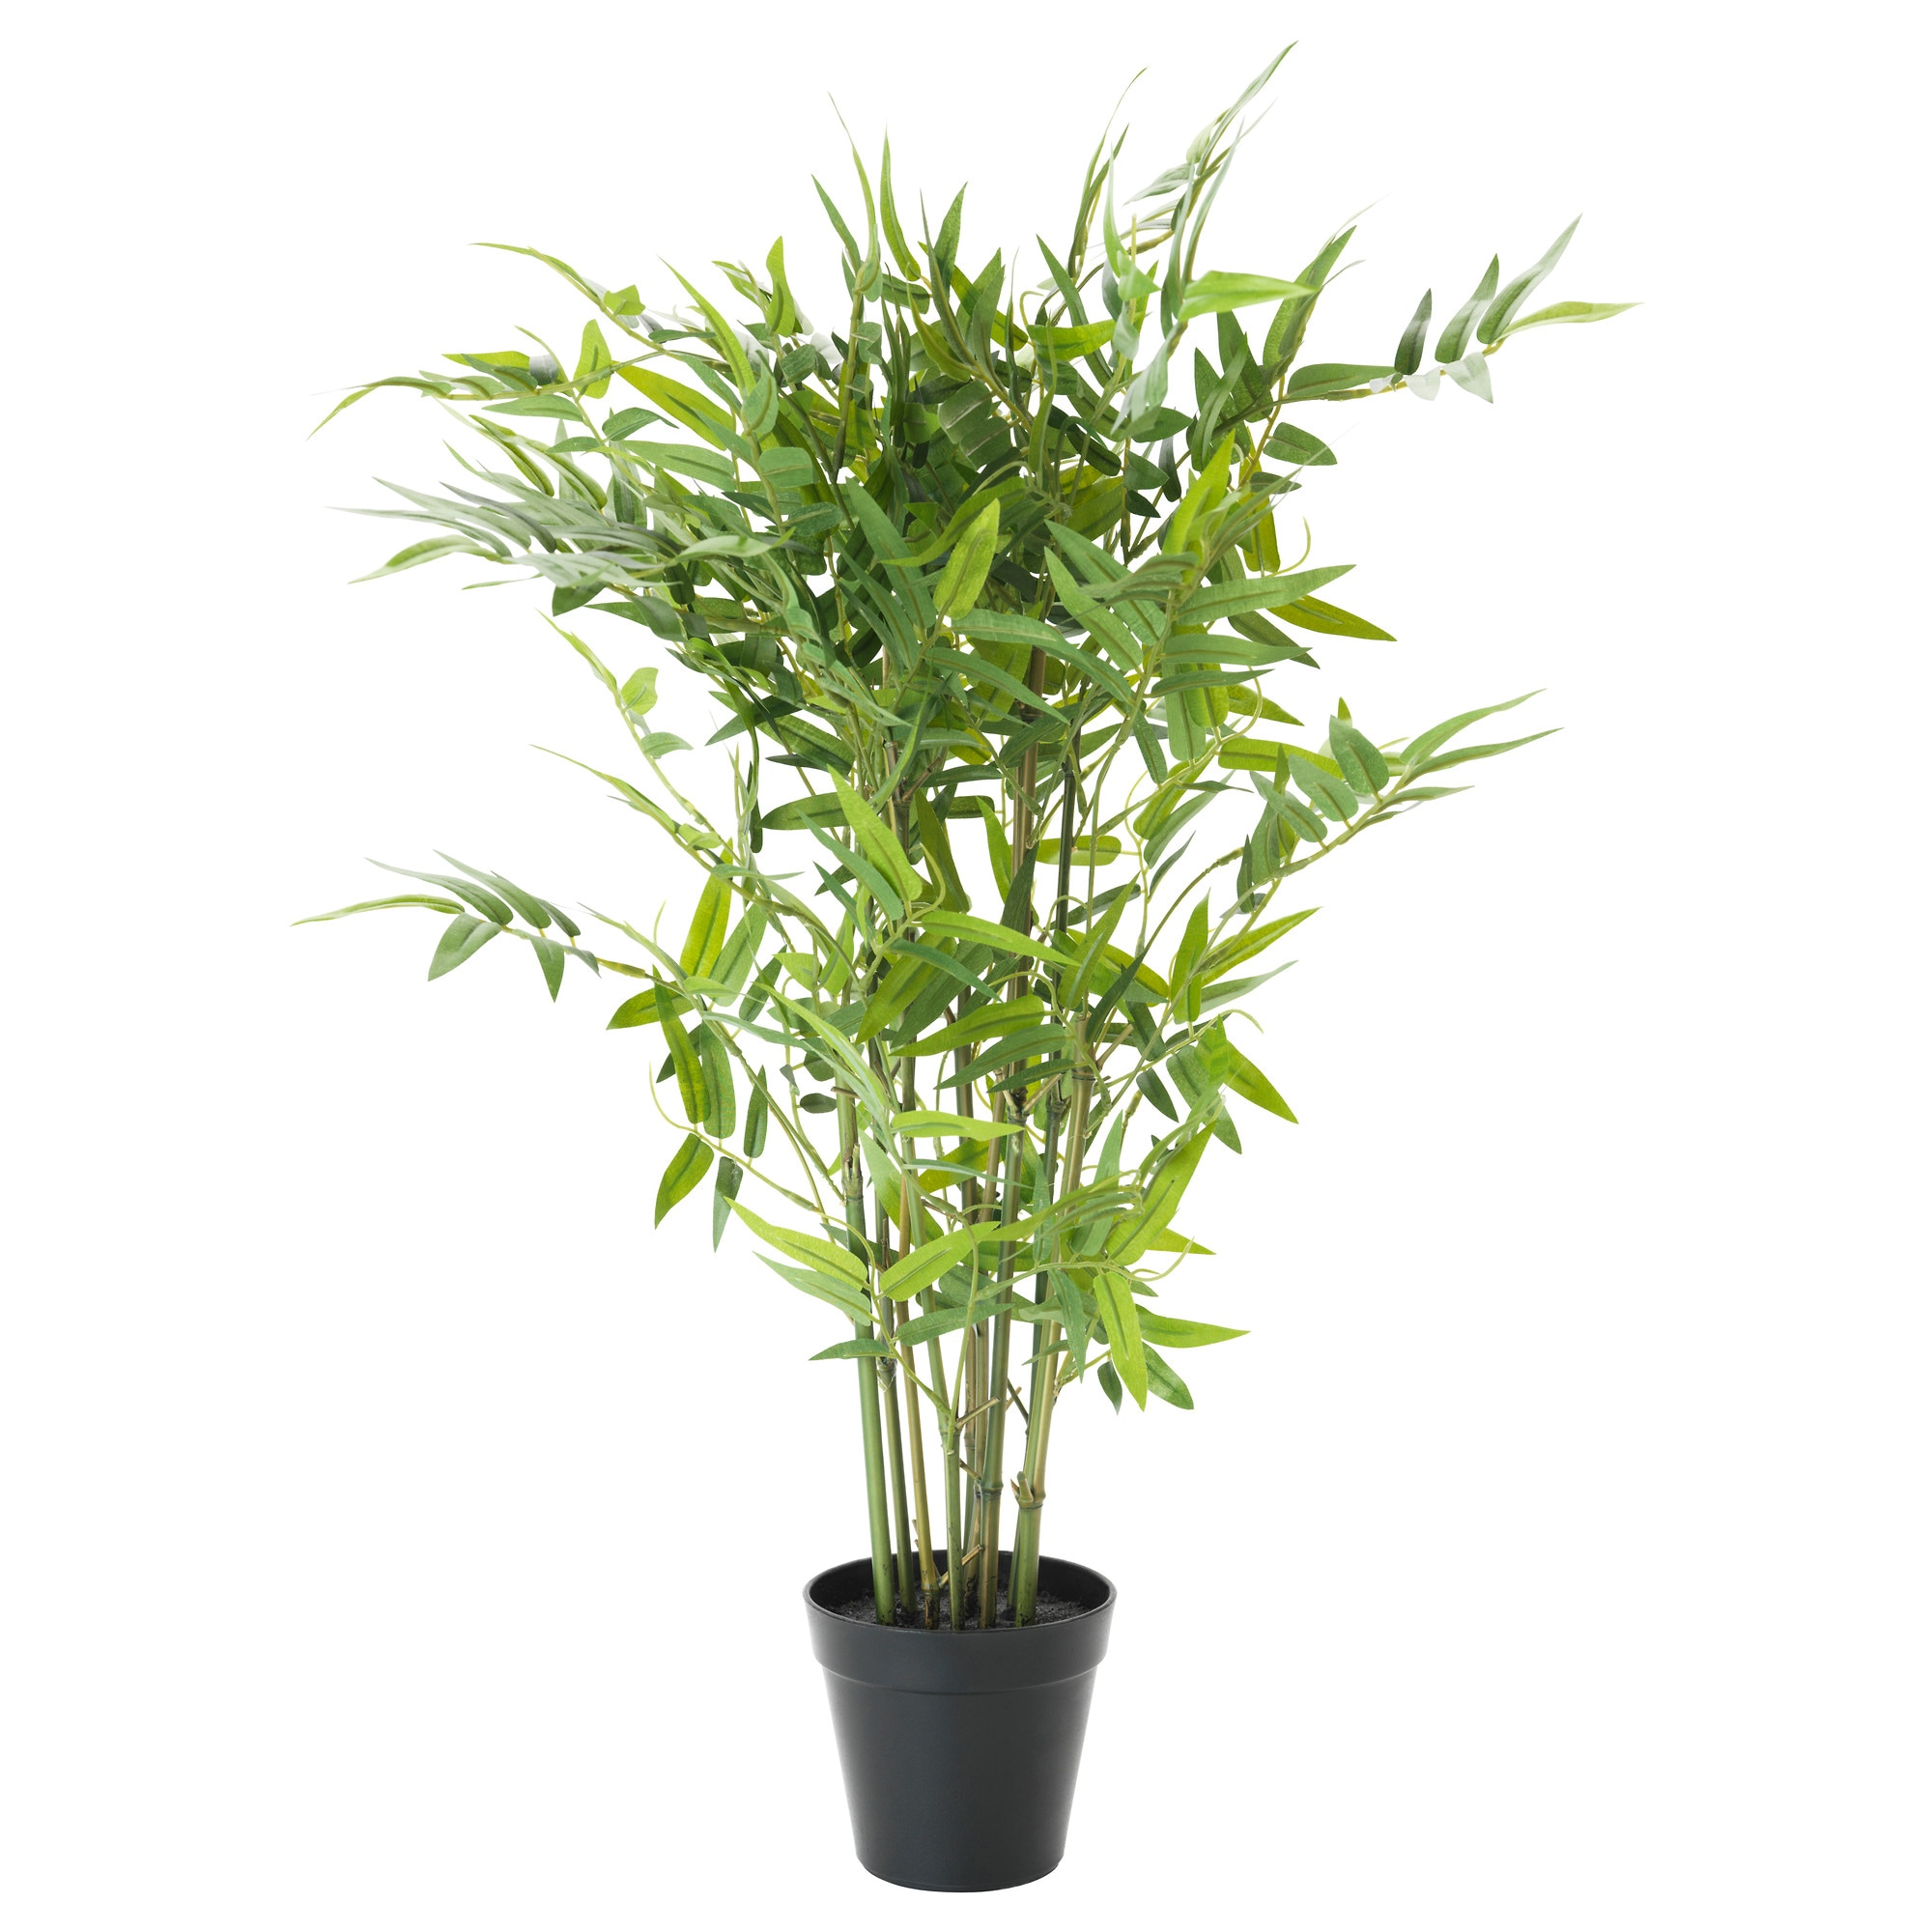 living room plant. FEJKA artificial potted plant  bamboo Height 24 Diameter of pot Artificial plants flowers Plants pots stands IKEA